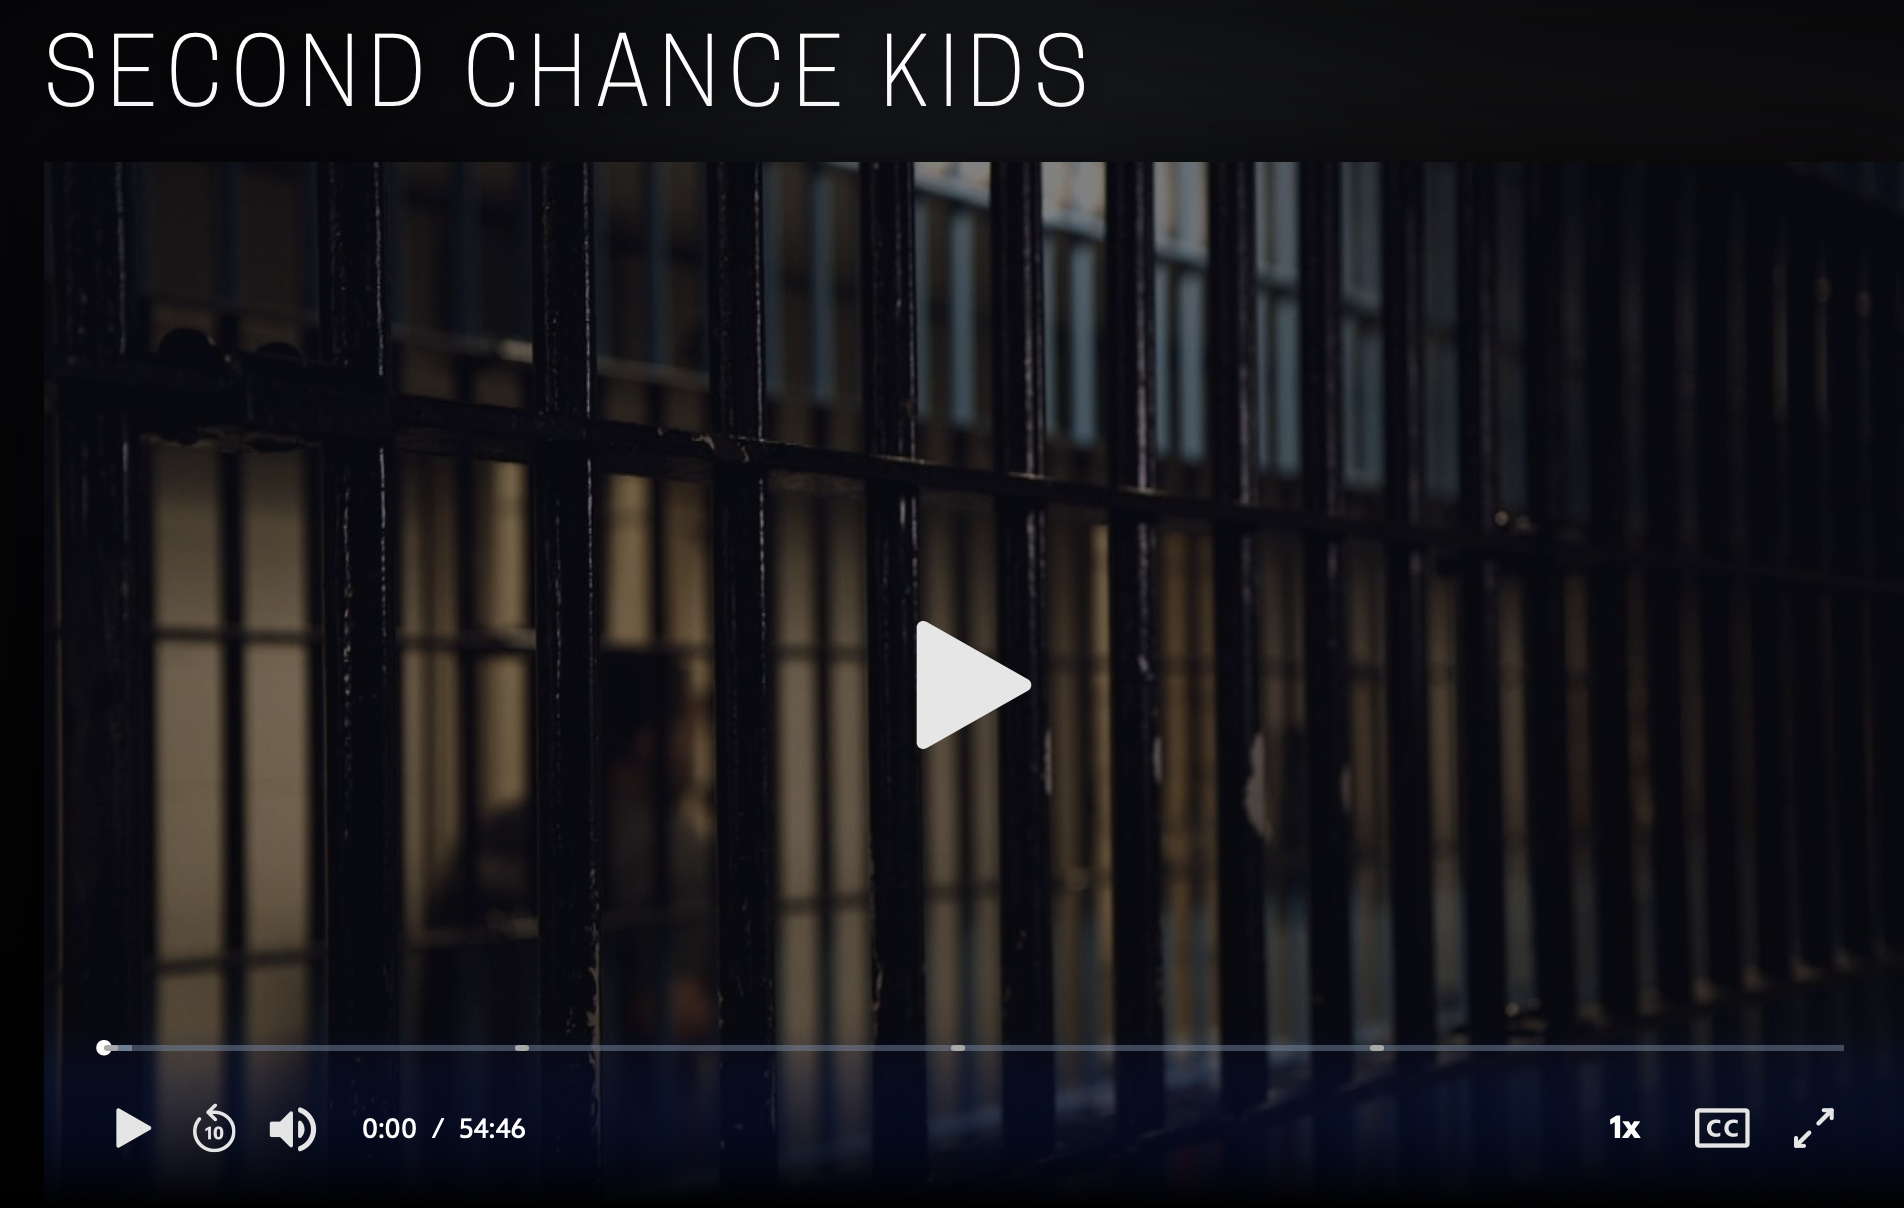 Screenshot of dark prison bars for a Frontline/PBS Video titled Second Chance Kids.